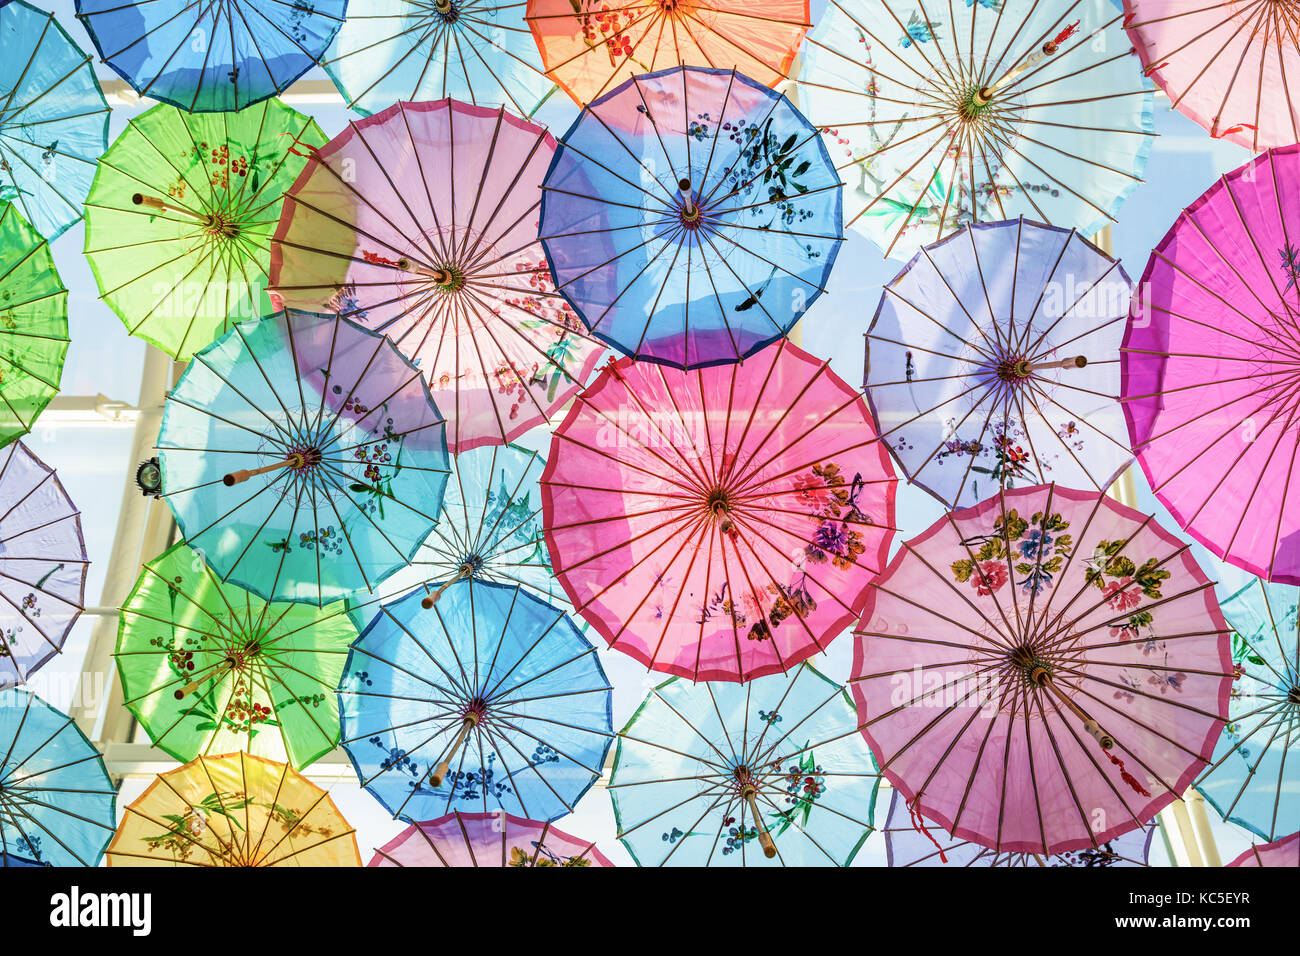 Roof decorated by colorful handmade umbrellas made from paper for protecting sunlight from outside. - Stock Image